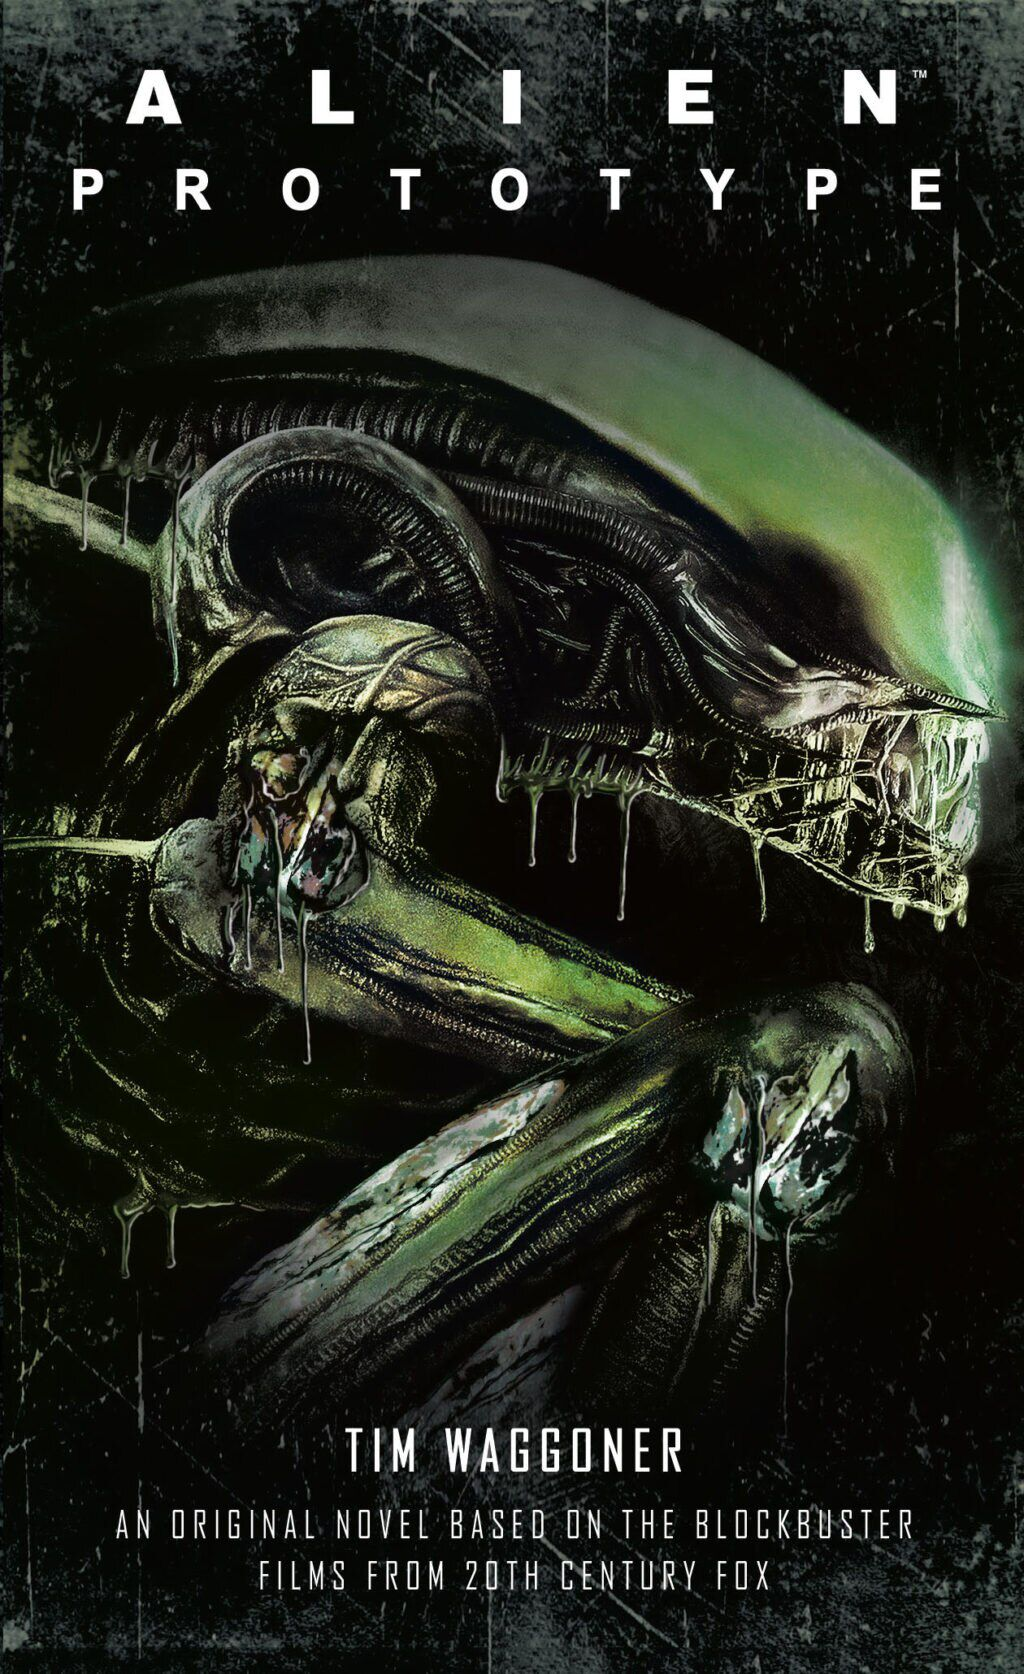 The cover of Tim Waggoner's book Alien: Prototype, with a side-on close-up of a Xenomorph